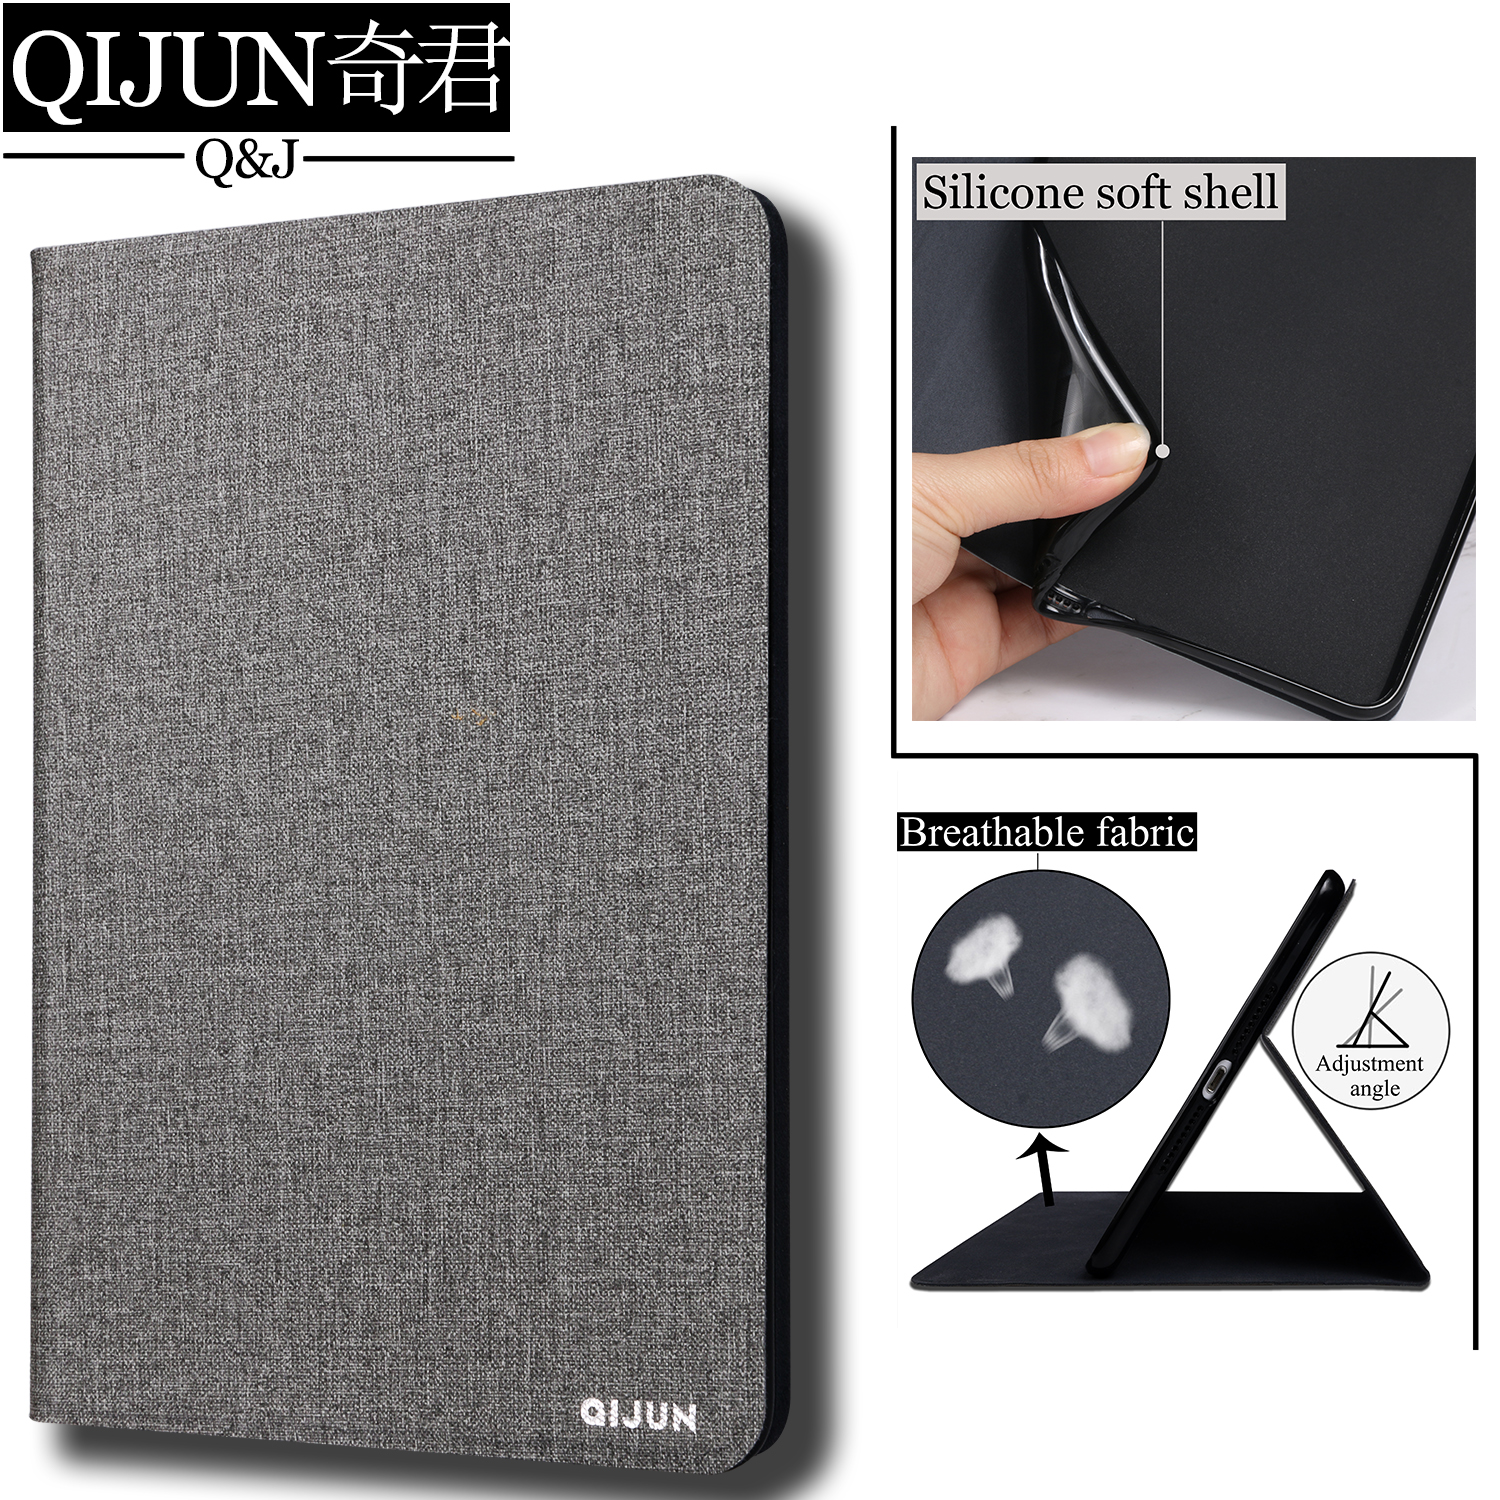 QIJUN tablet flip case for Samsung Galaxy Tab A 10 5 quot protective Stand Cover Silicone soft shell fundas capa coque for T590 T595 in Tablets amp e Books Case from Computer amp Office